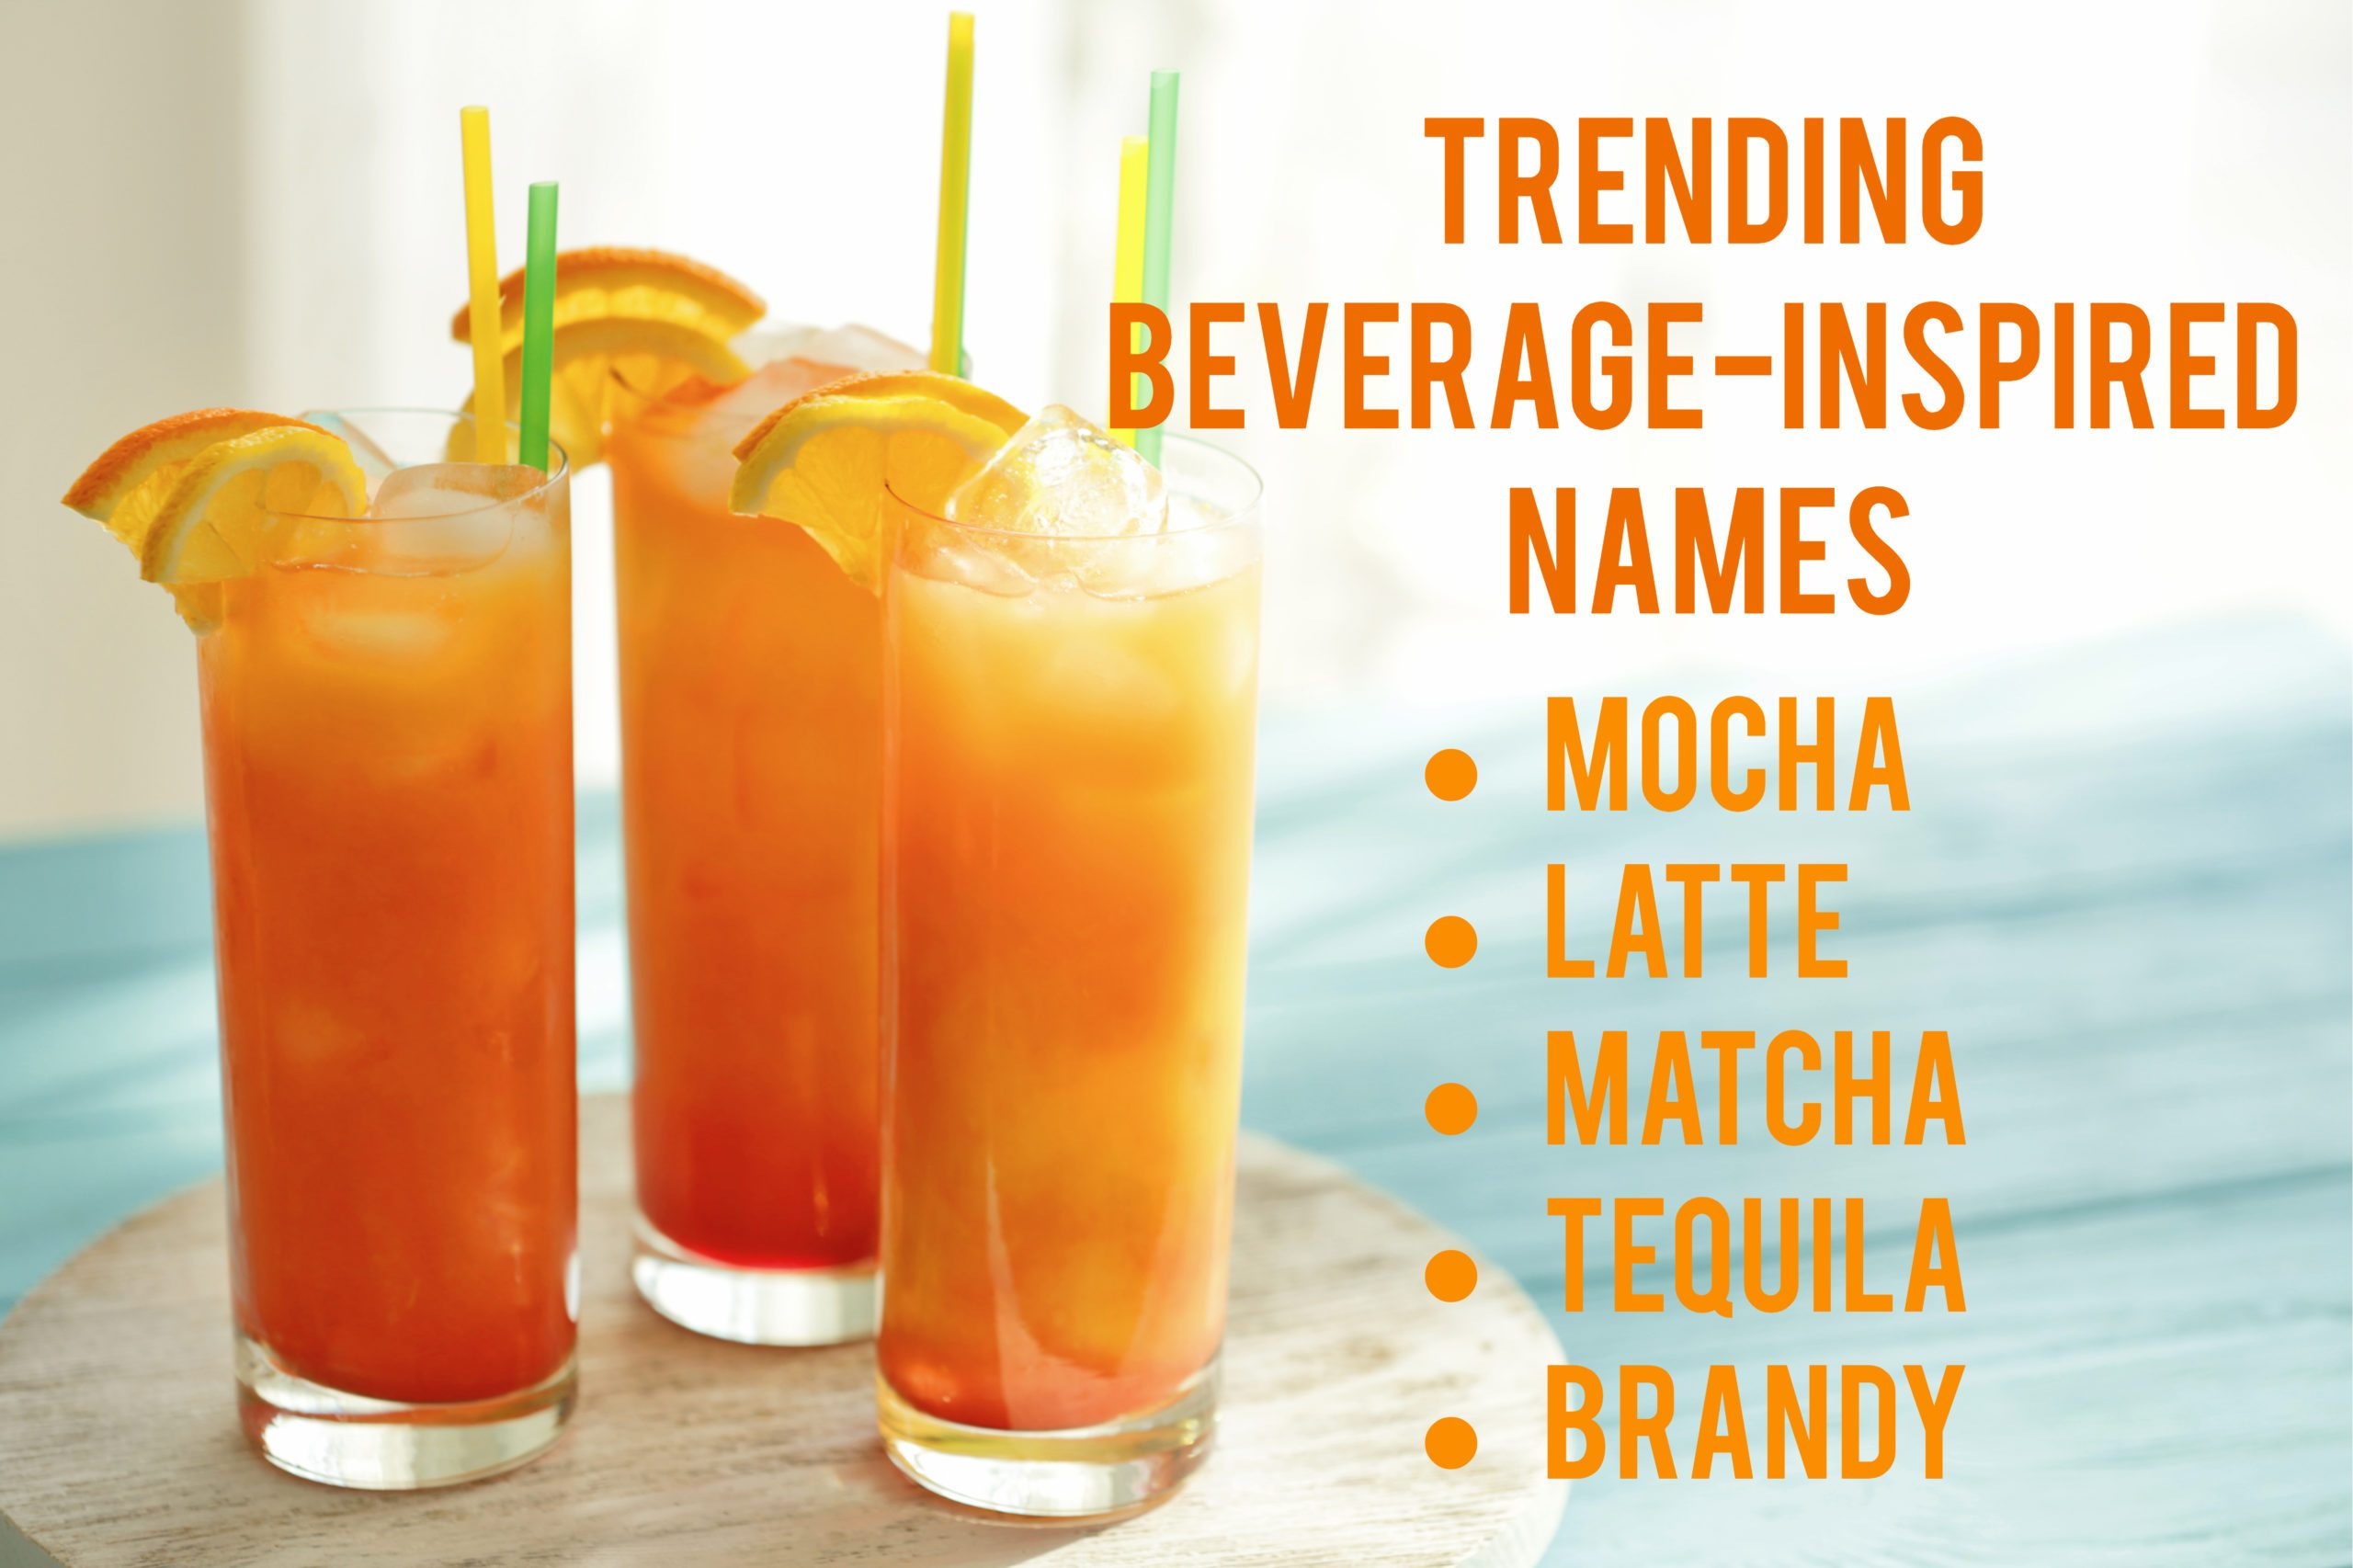 Most popular dog names in Canada 2020 - Top beverage-inspired names